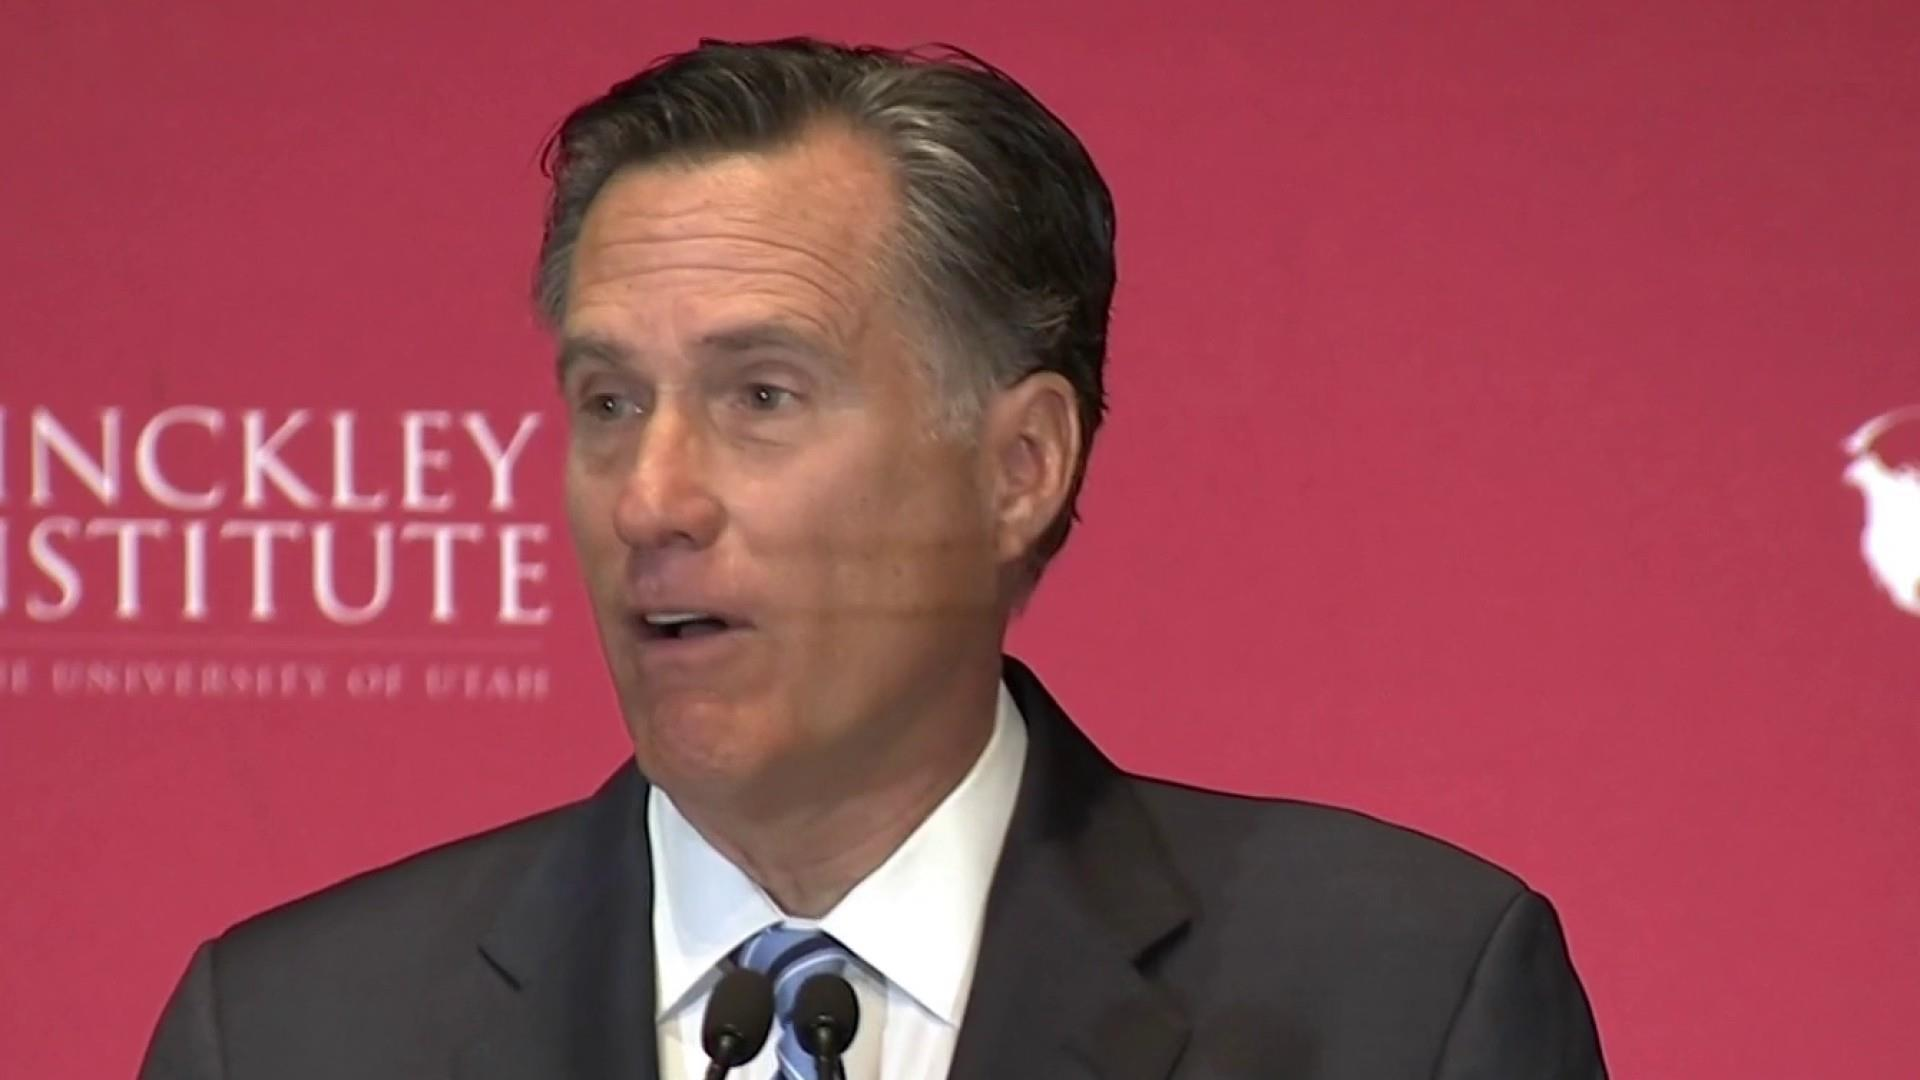 Romney said he wouldn't accept Trump endorsement. He did.